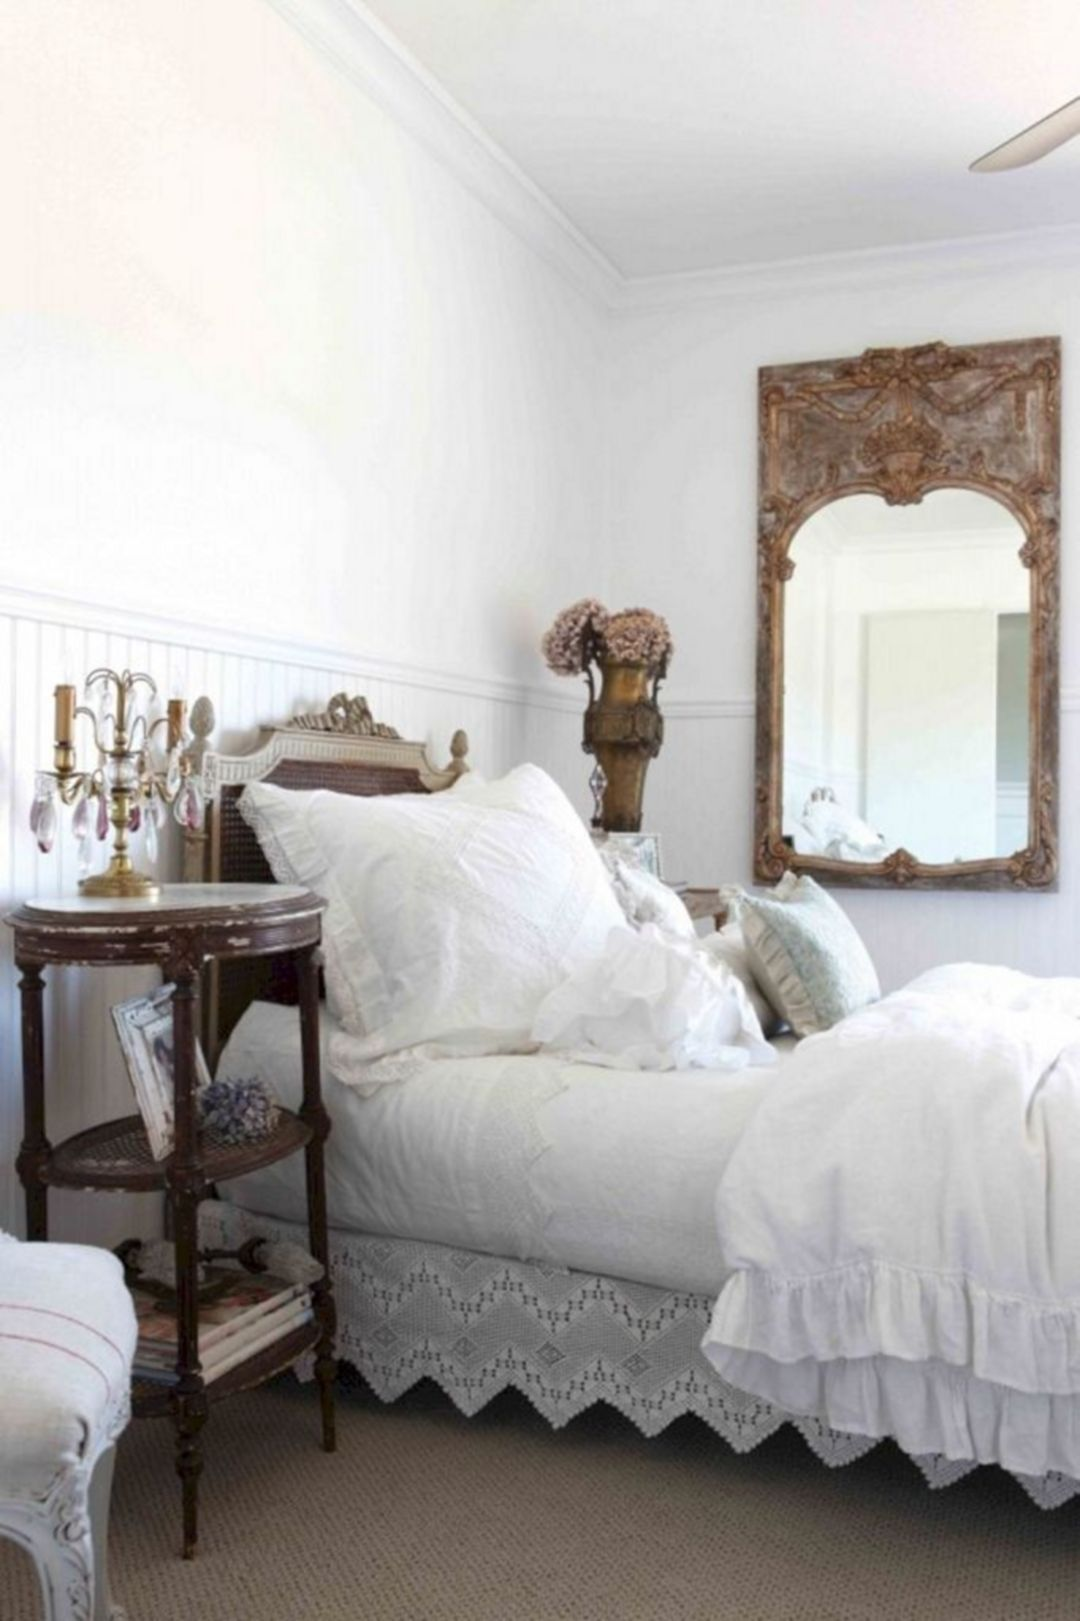 20 Awesome Vintage Bedroom Decoration Ideas That Are Suitable For You To Make Inspiration Bedroom Vintage Vintage Bedroom Decor Vintage Bedroom Styles